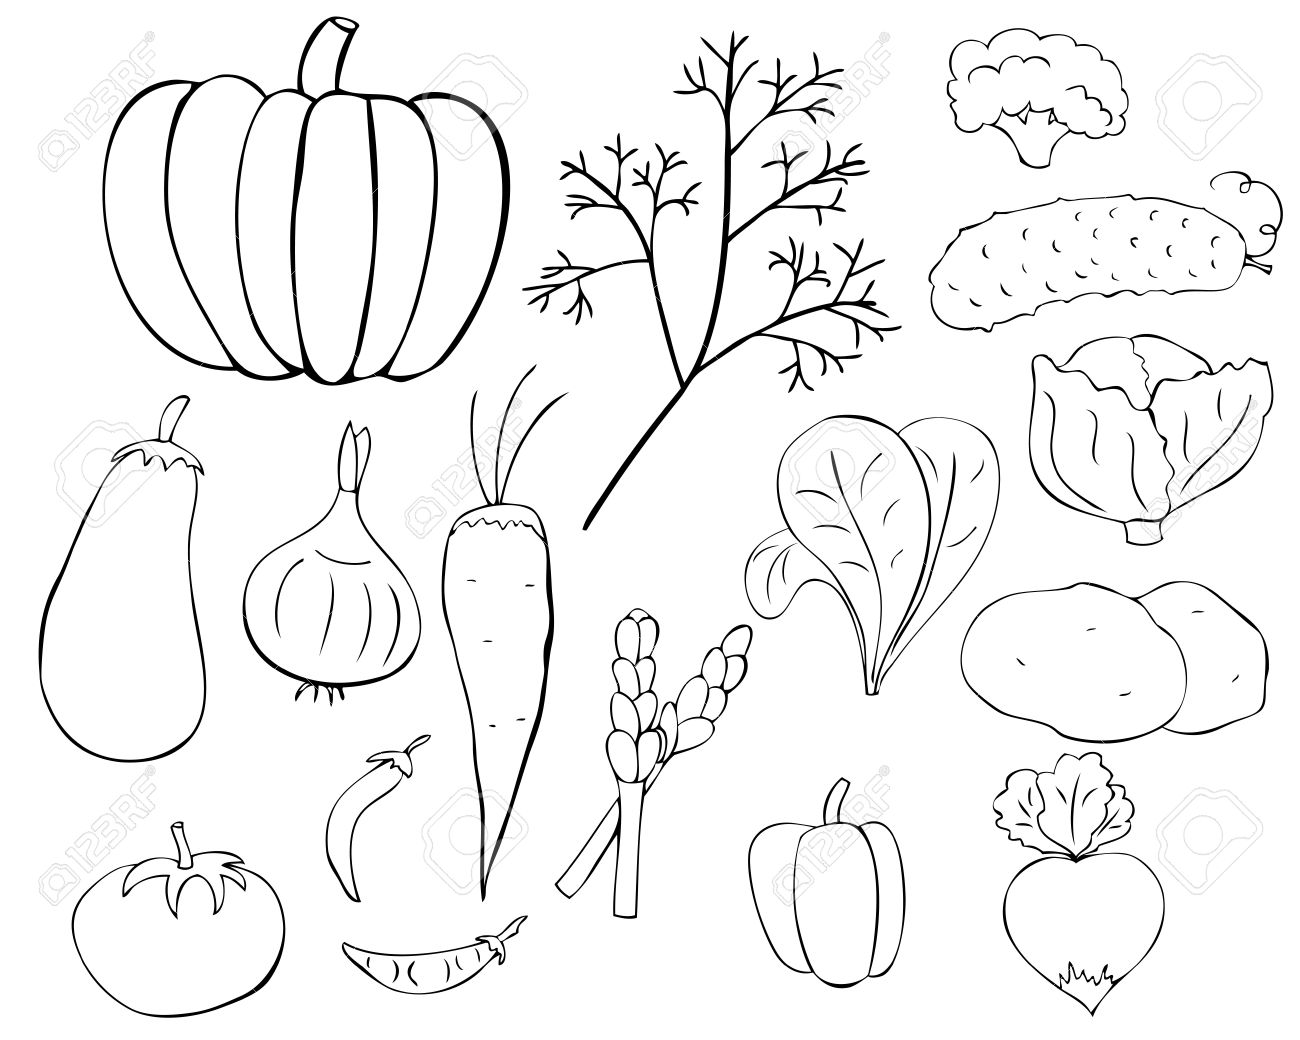 Vegetables  black and white clipart vegetables black and white google search designs